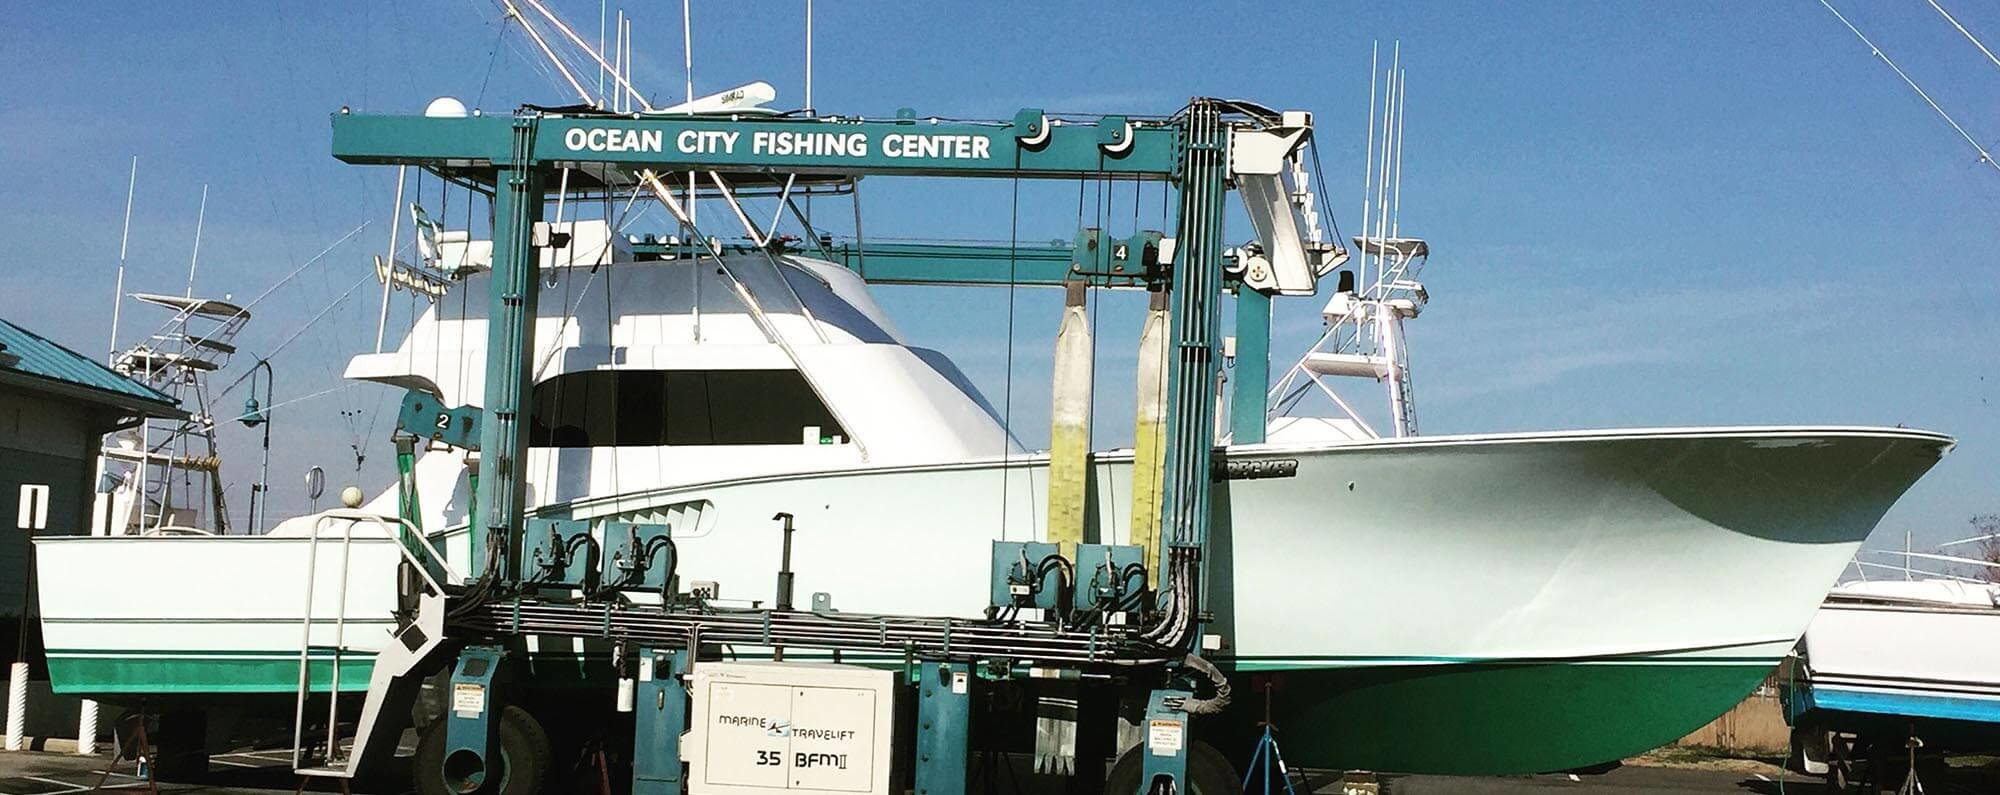 Ocean City Fishing Center travel lift carrying a boat